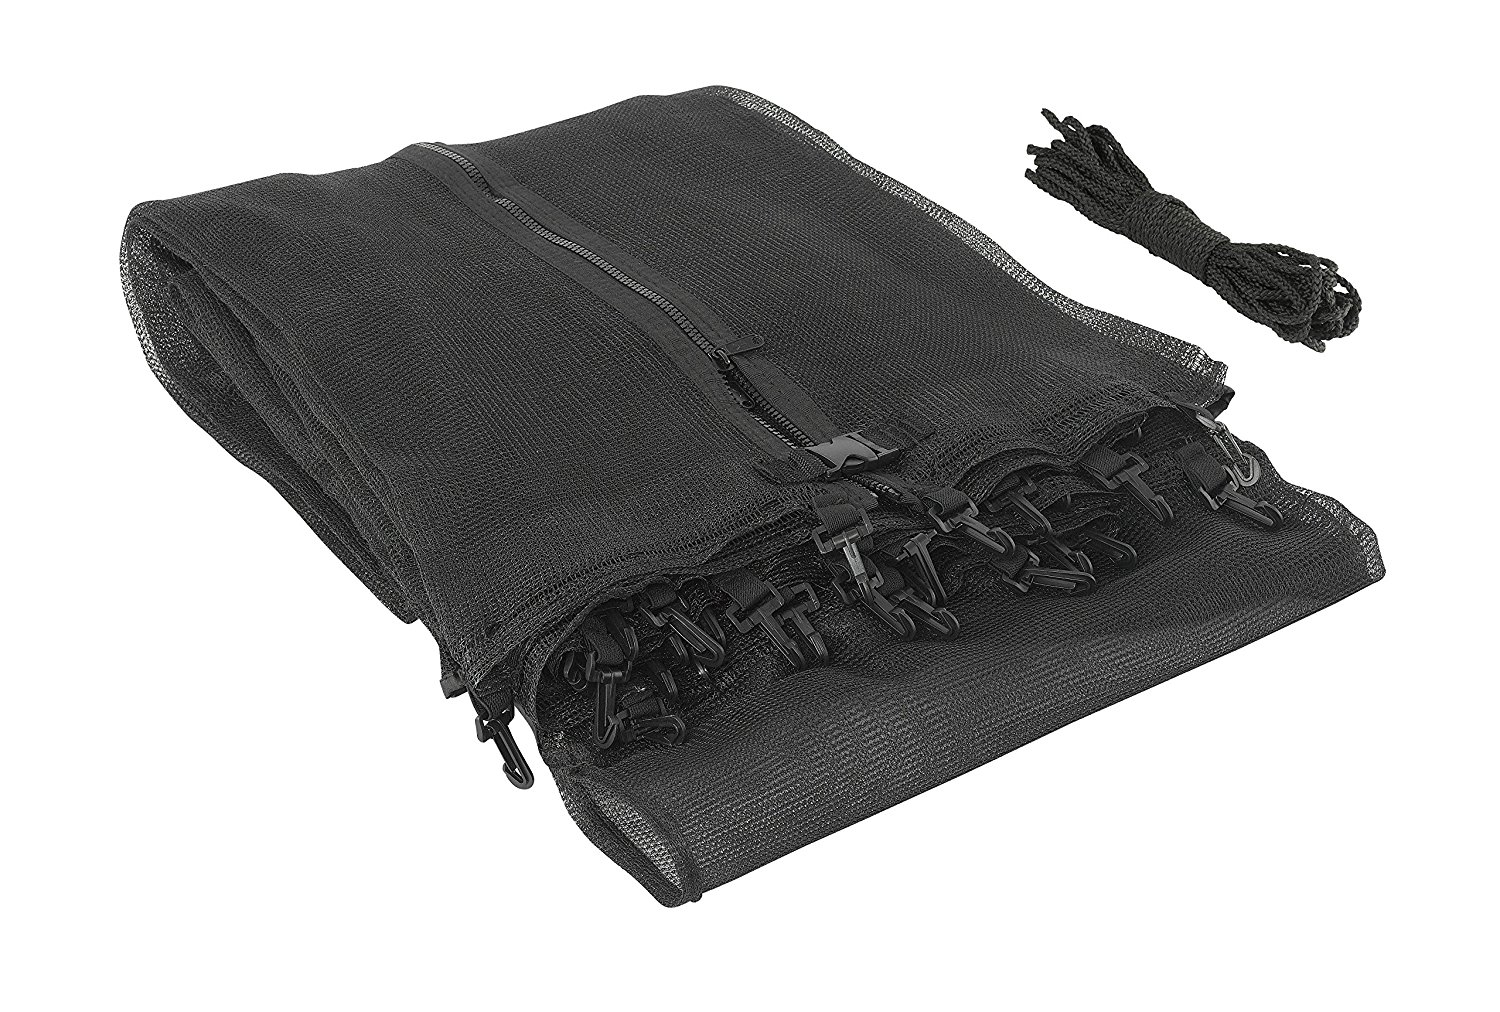 Trampoline Replacement Enclosure Safety Net, Fits For 7 FT. Round Frames, Using 3 Arches, with Sleeves on top -NET ONLY